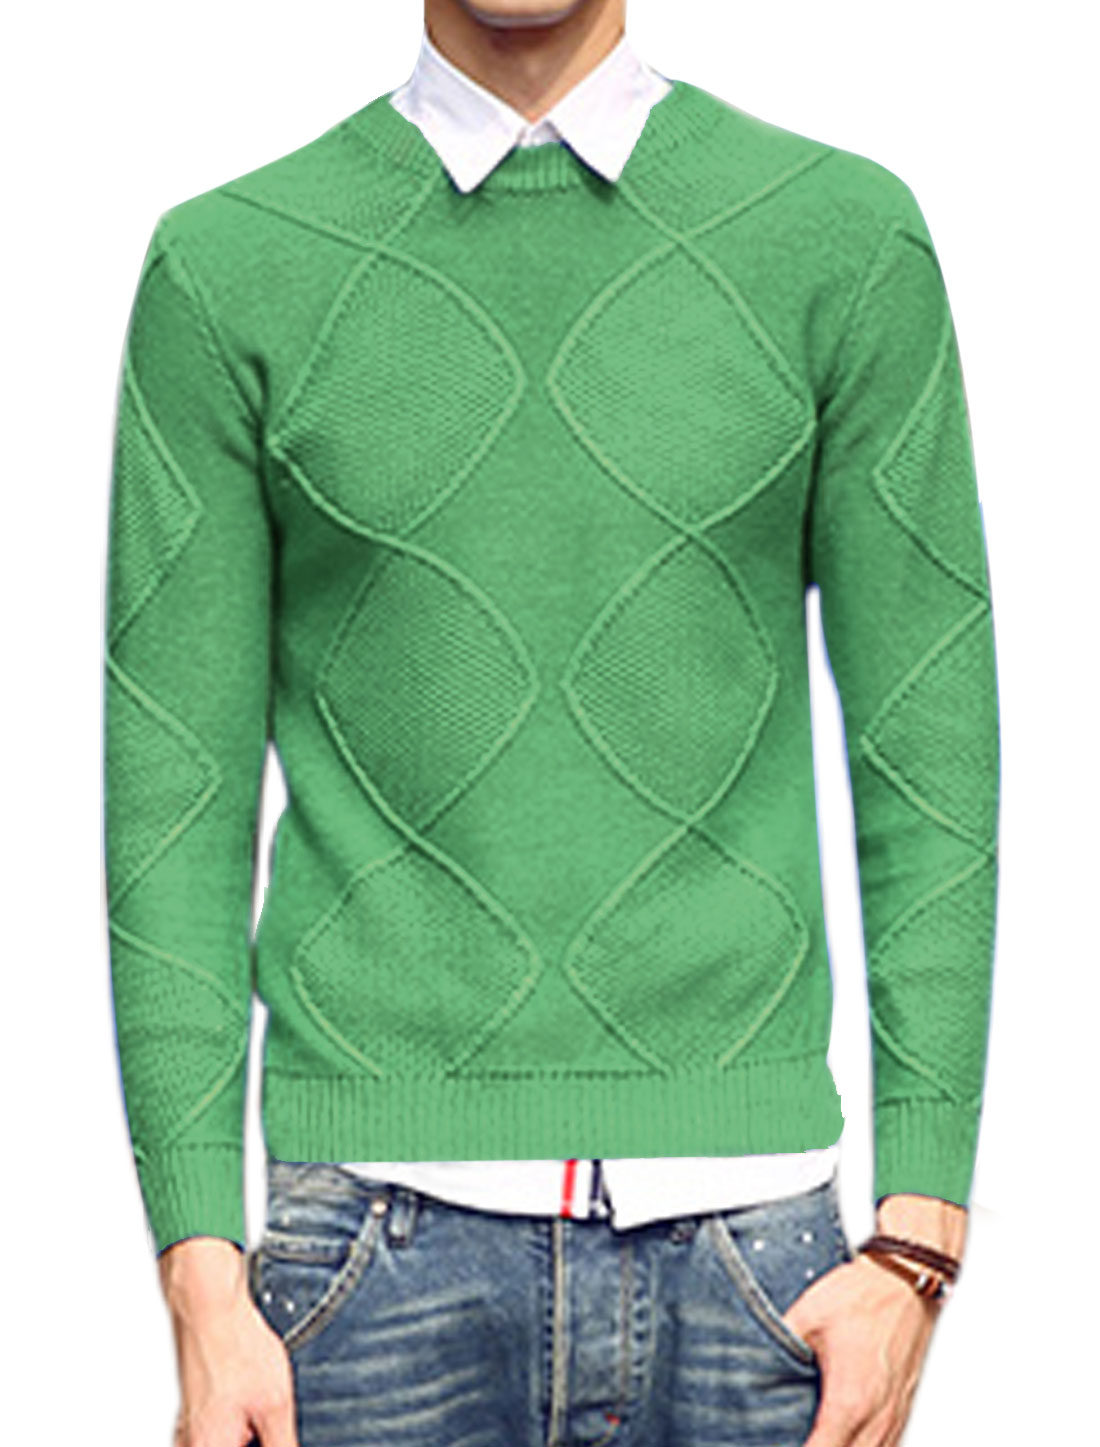 Men Crew Neck Argyle Design Ribbed Cuffs Fashion Sweater Light Green M